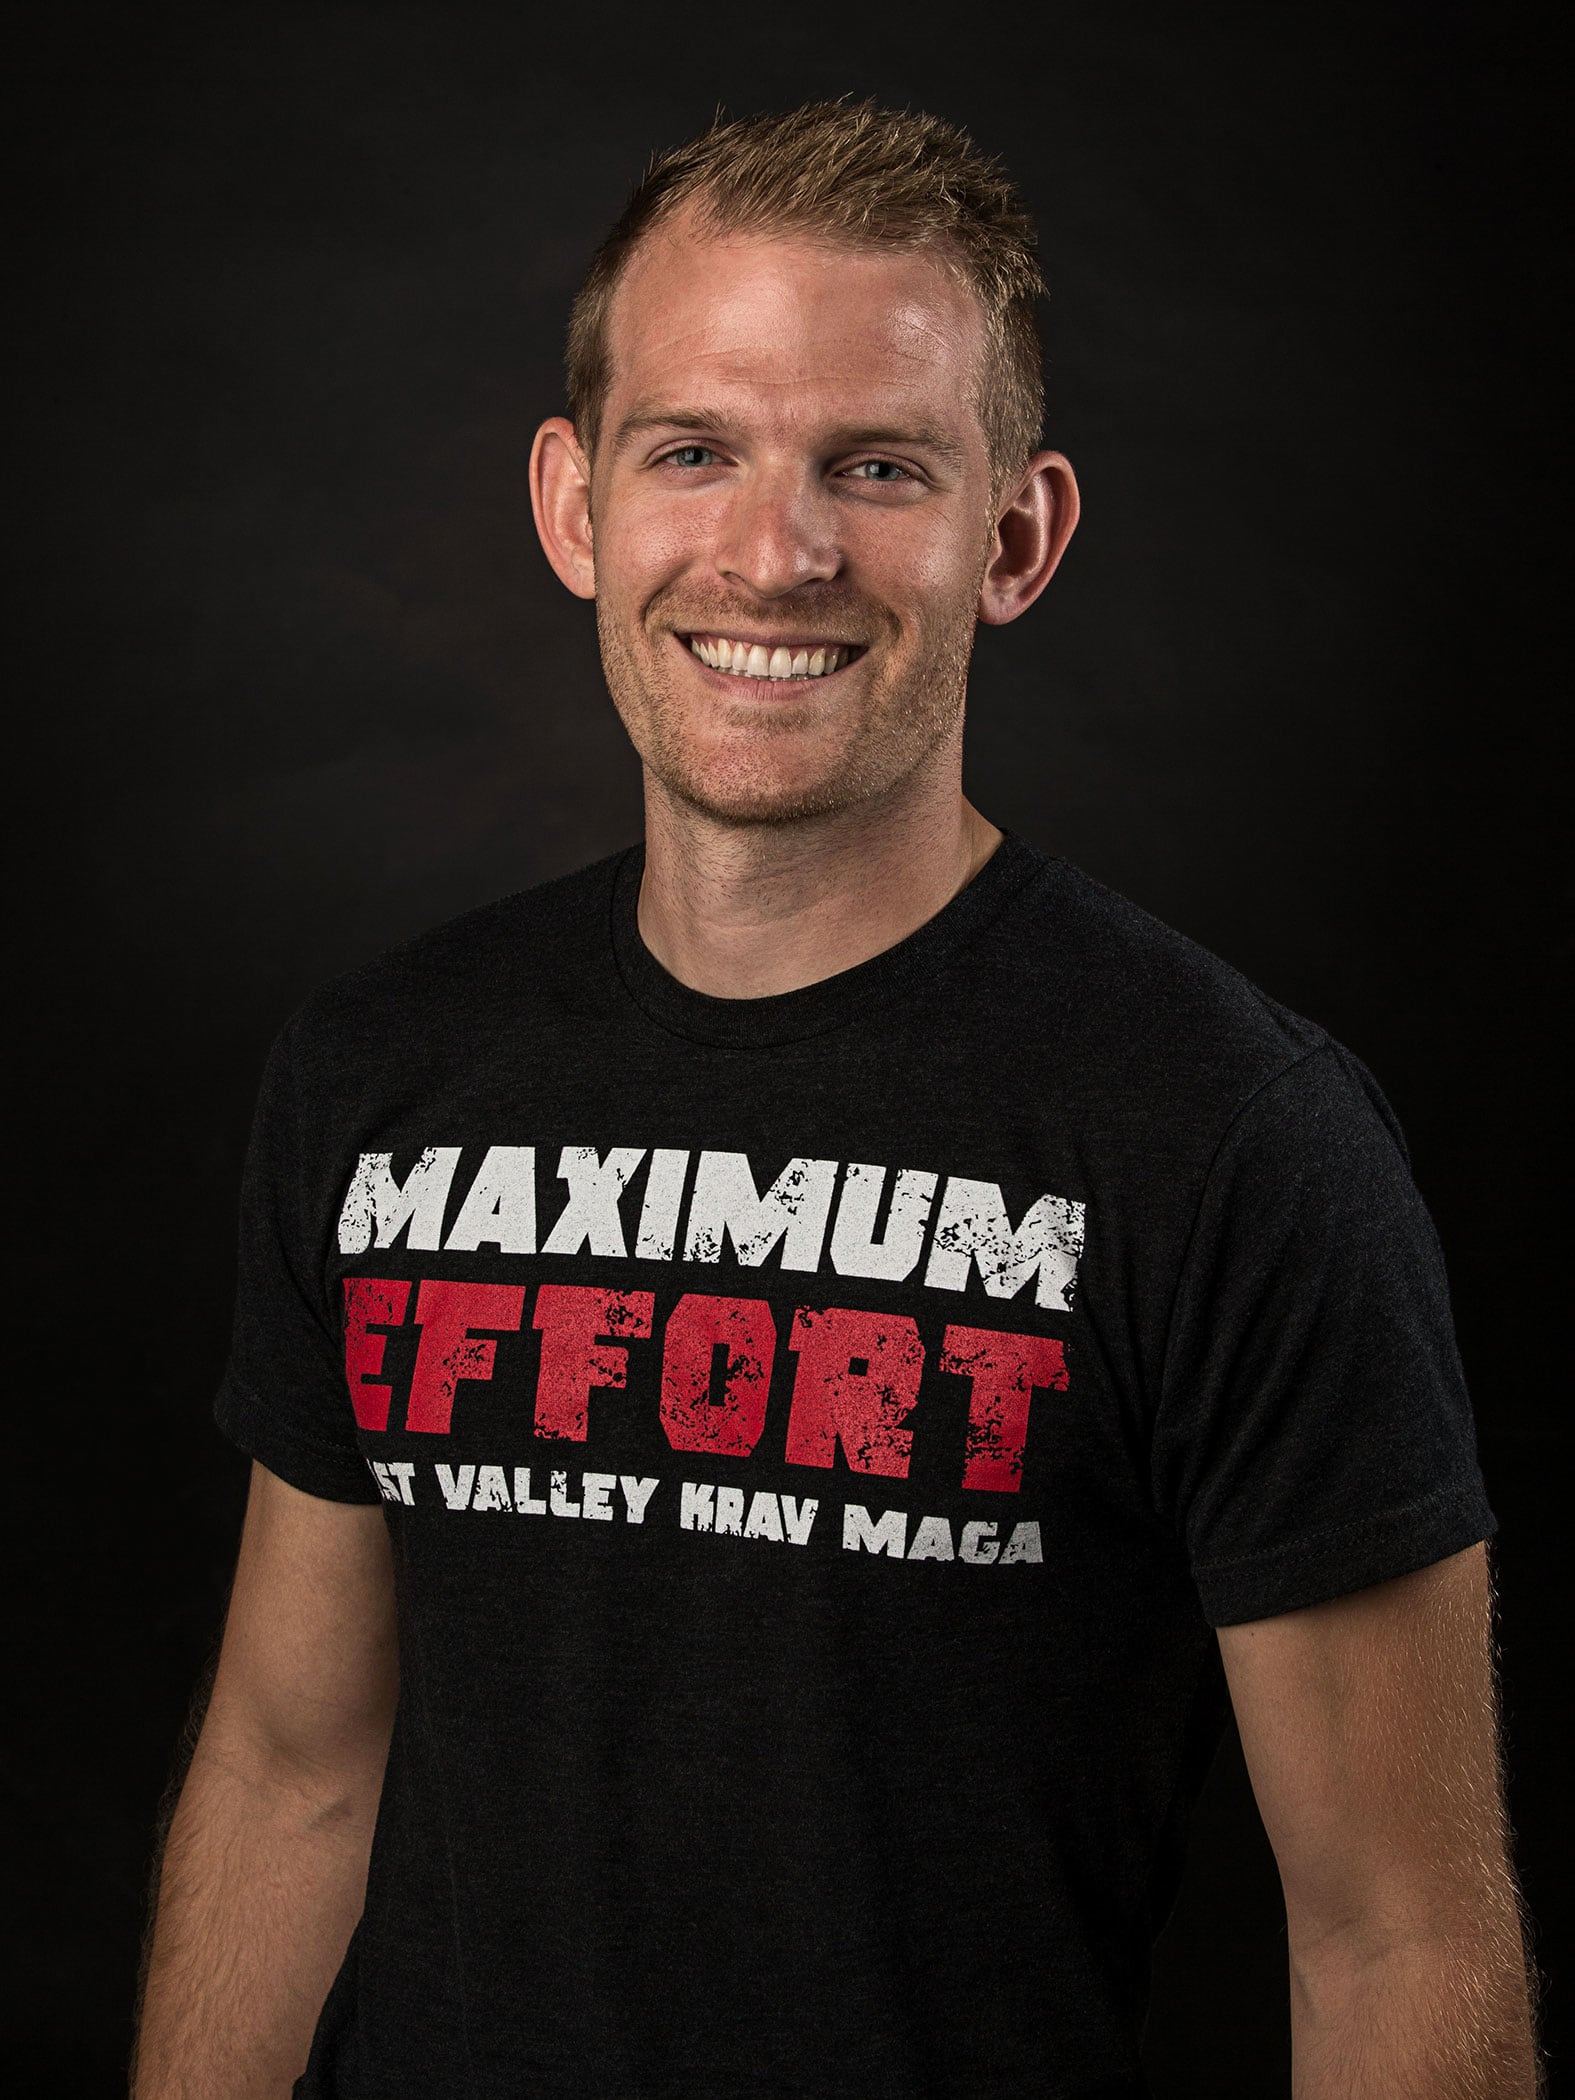 Eli Wegele in Phoenix - EVKM Self Defense & Fitness